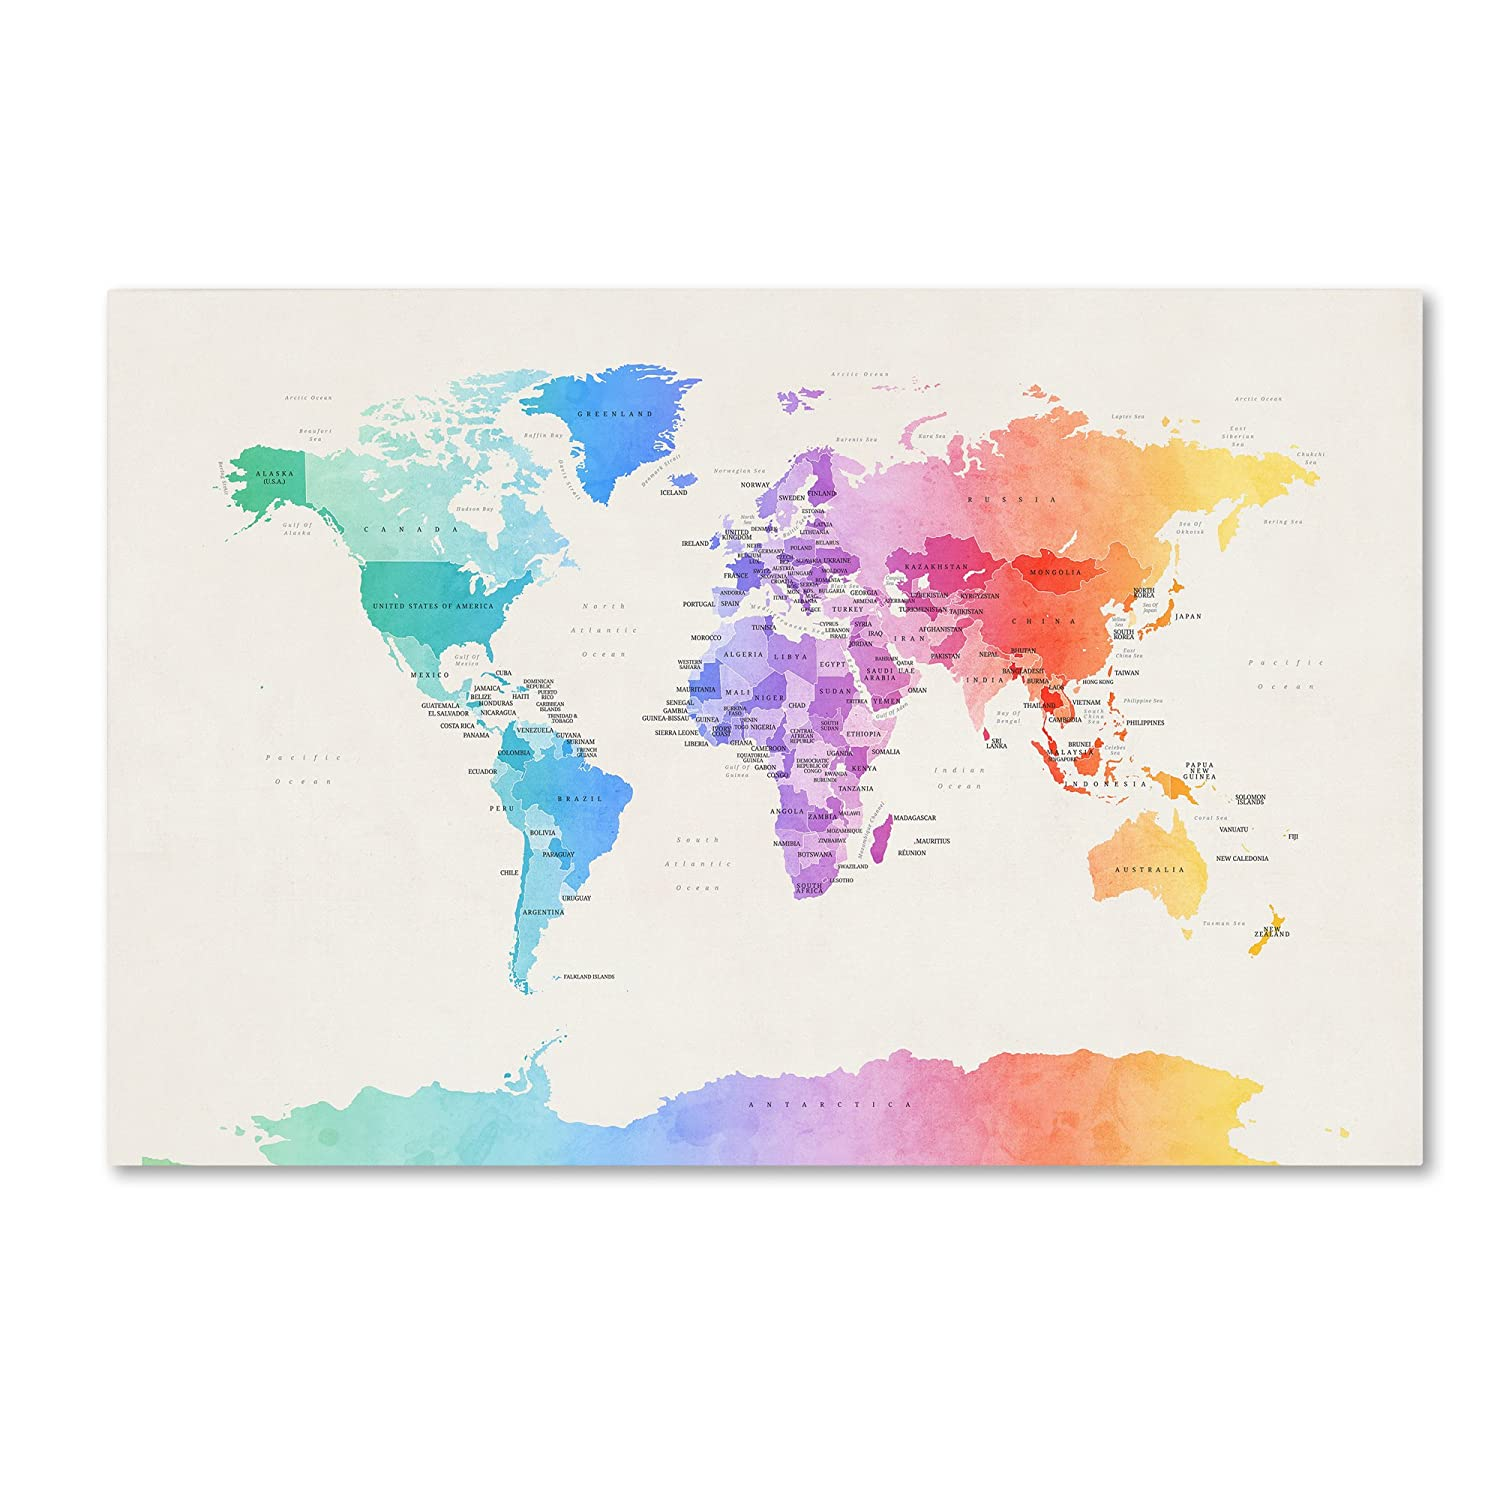 Watercolor Political World Map by Michael Tompsett, 30x47-Inch Canvas on georgetown on world map, costa rica on world map, el salvador map, cuba on world map, tenochtitlan on world map, recife on world map, panama on world map, tegucigalpa on world map, cabinda on world map, bahamas on world map, altamira on world map, santiago on world map, port of spain on world map, la habana on world map, salvador brazil on world map, arenal volcano on world map, santo domingo on world map, monterey world map, sanaa on world map, conakry on world map,